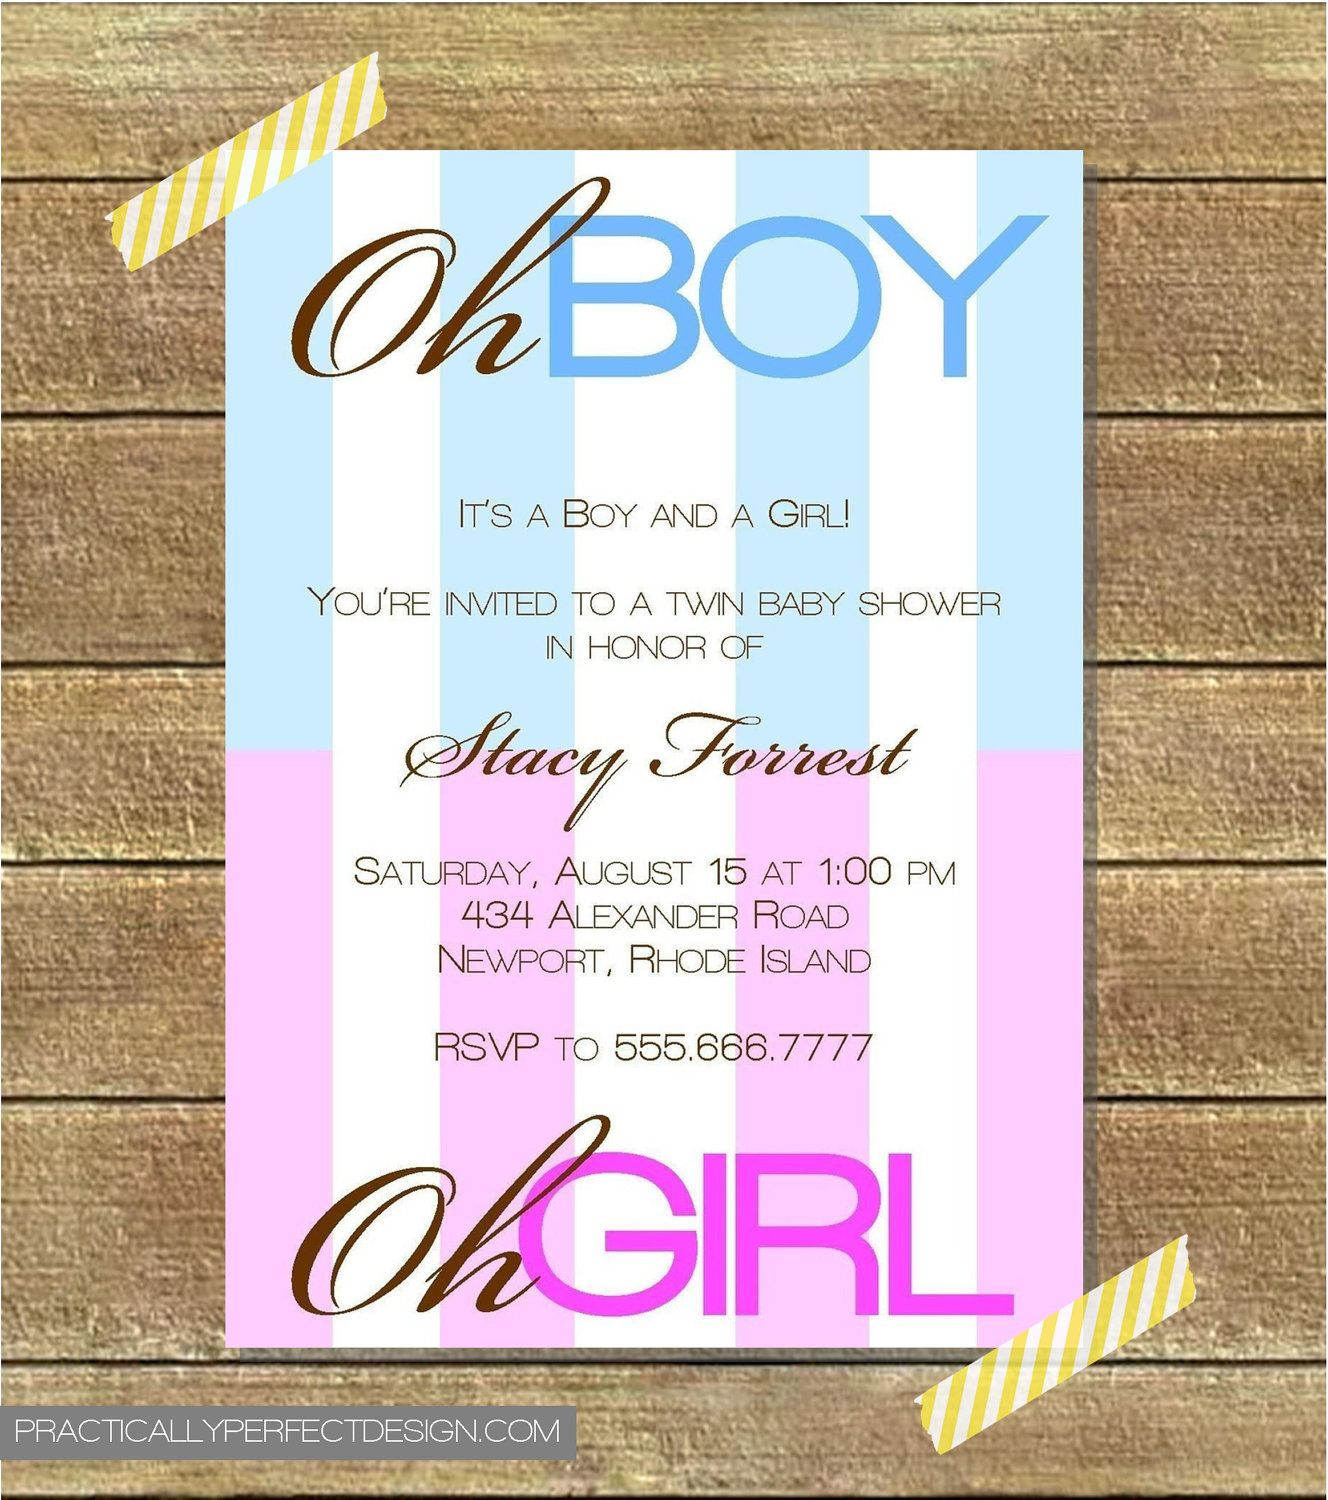 for invitation ideas twins all a shower invitations boy wording baby